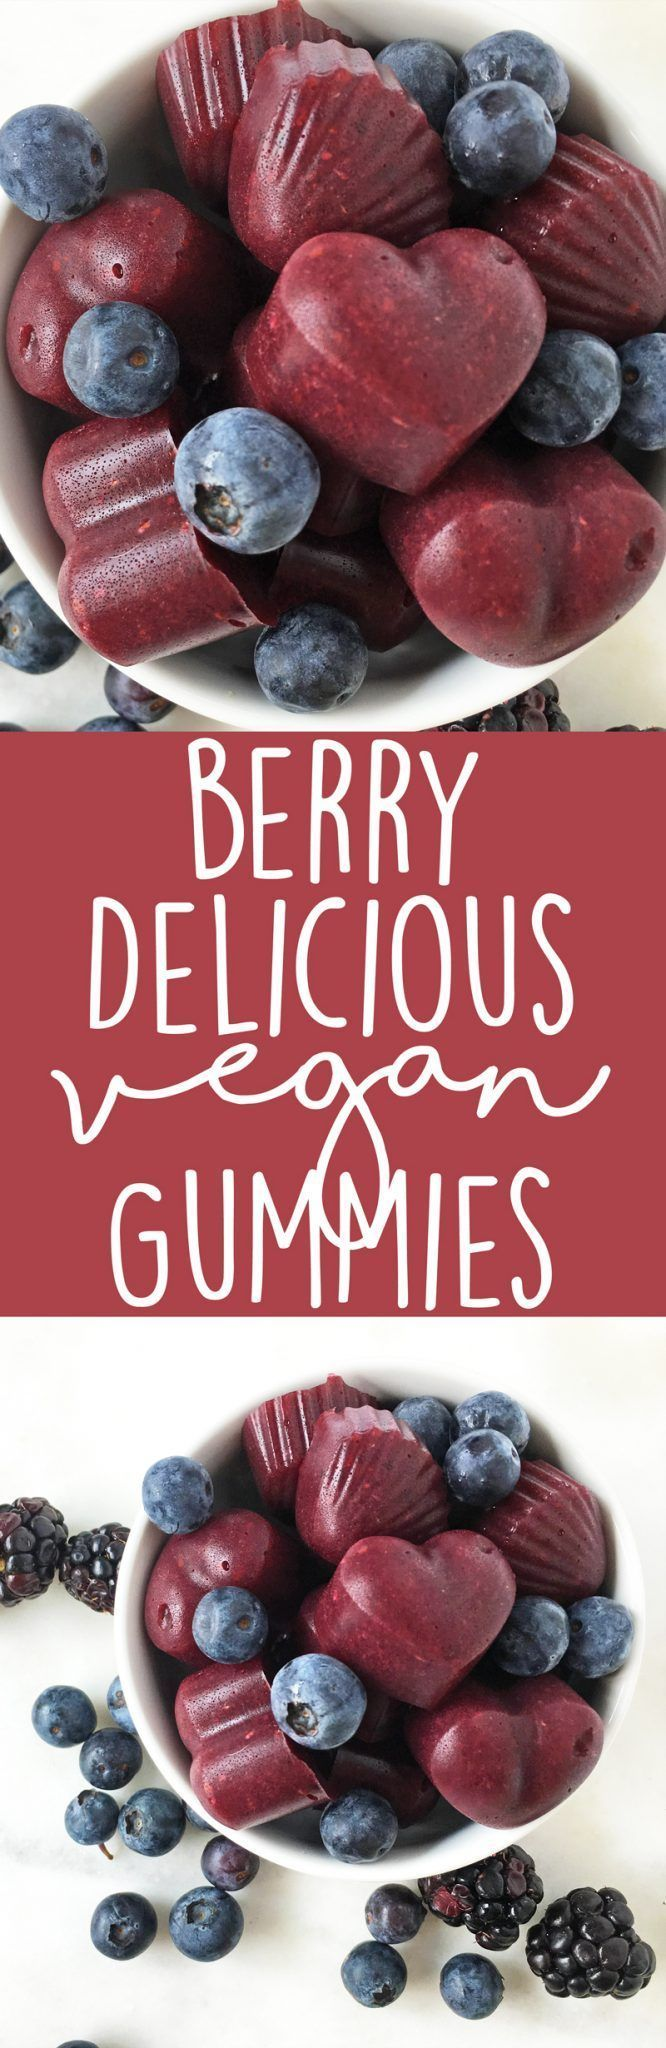 Berry Delicious Vegan Gummies made with agar powder. Healthy snack idea for kids - this recipe calls for the whole fruit, not just sugary fruit juice! | http://thecrunchychronicles.com